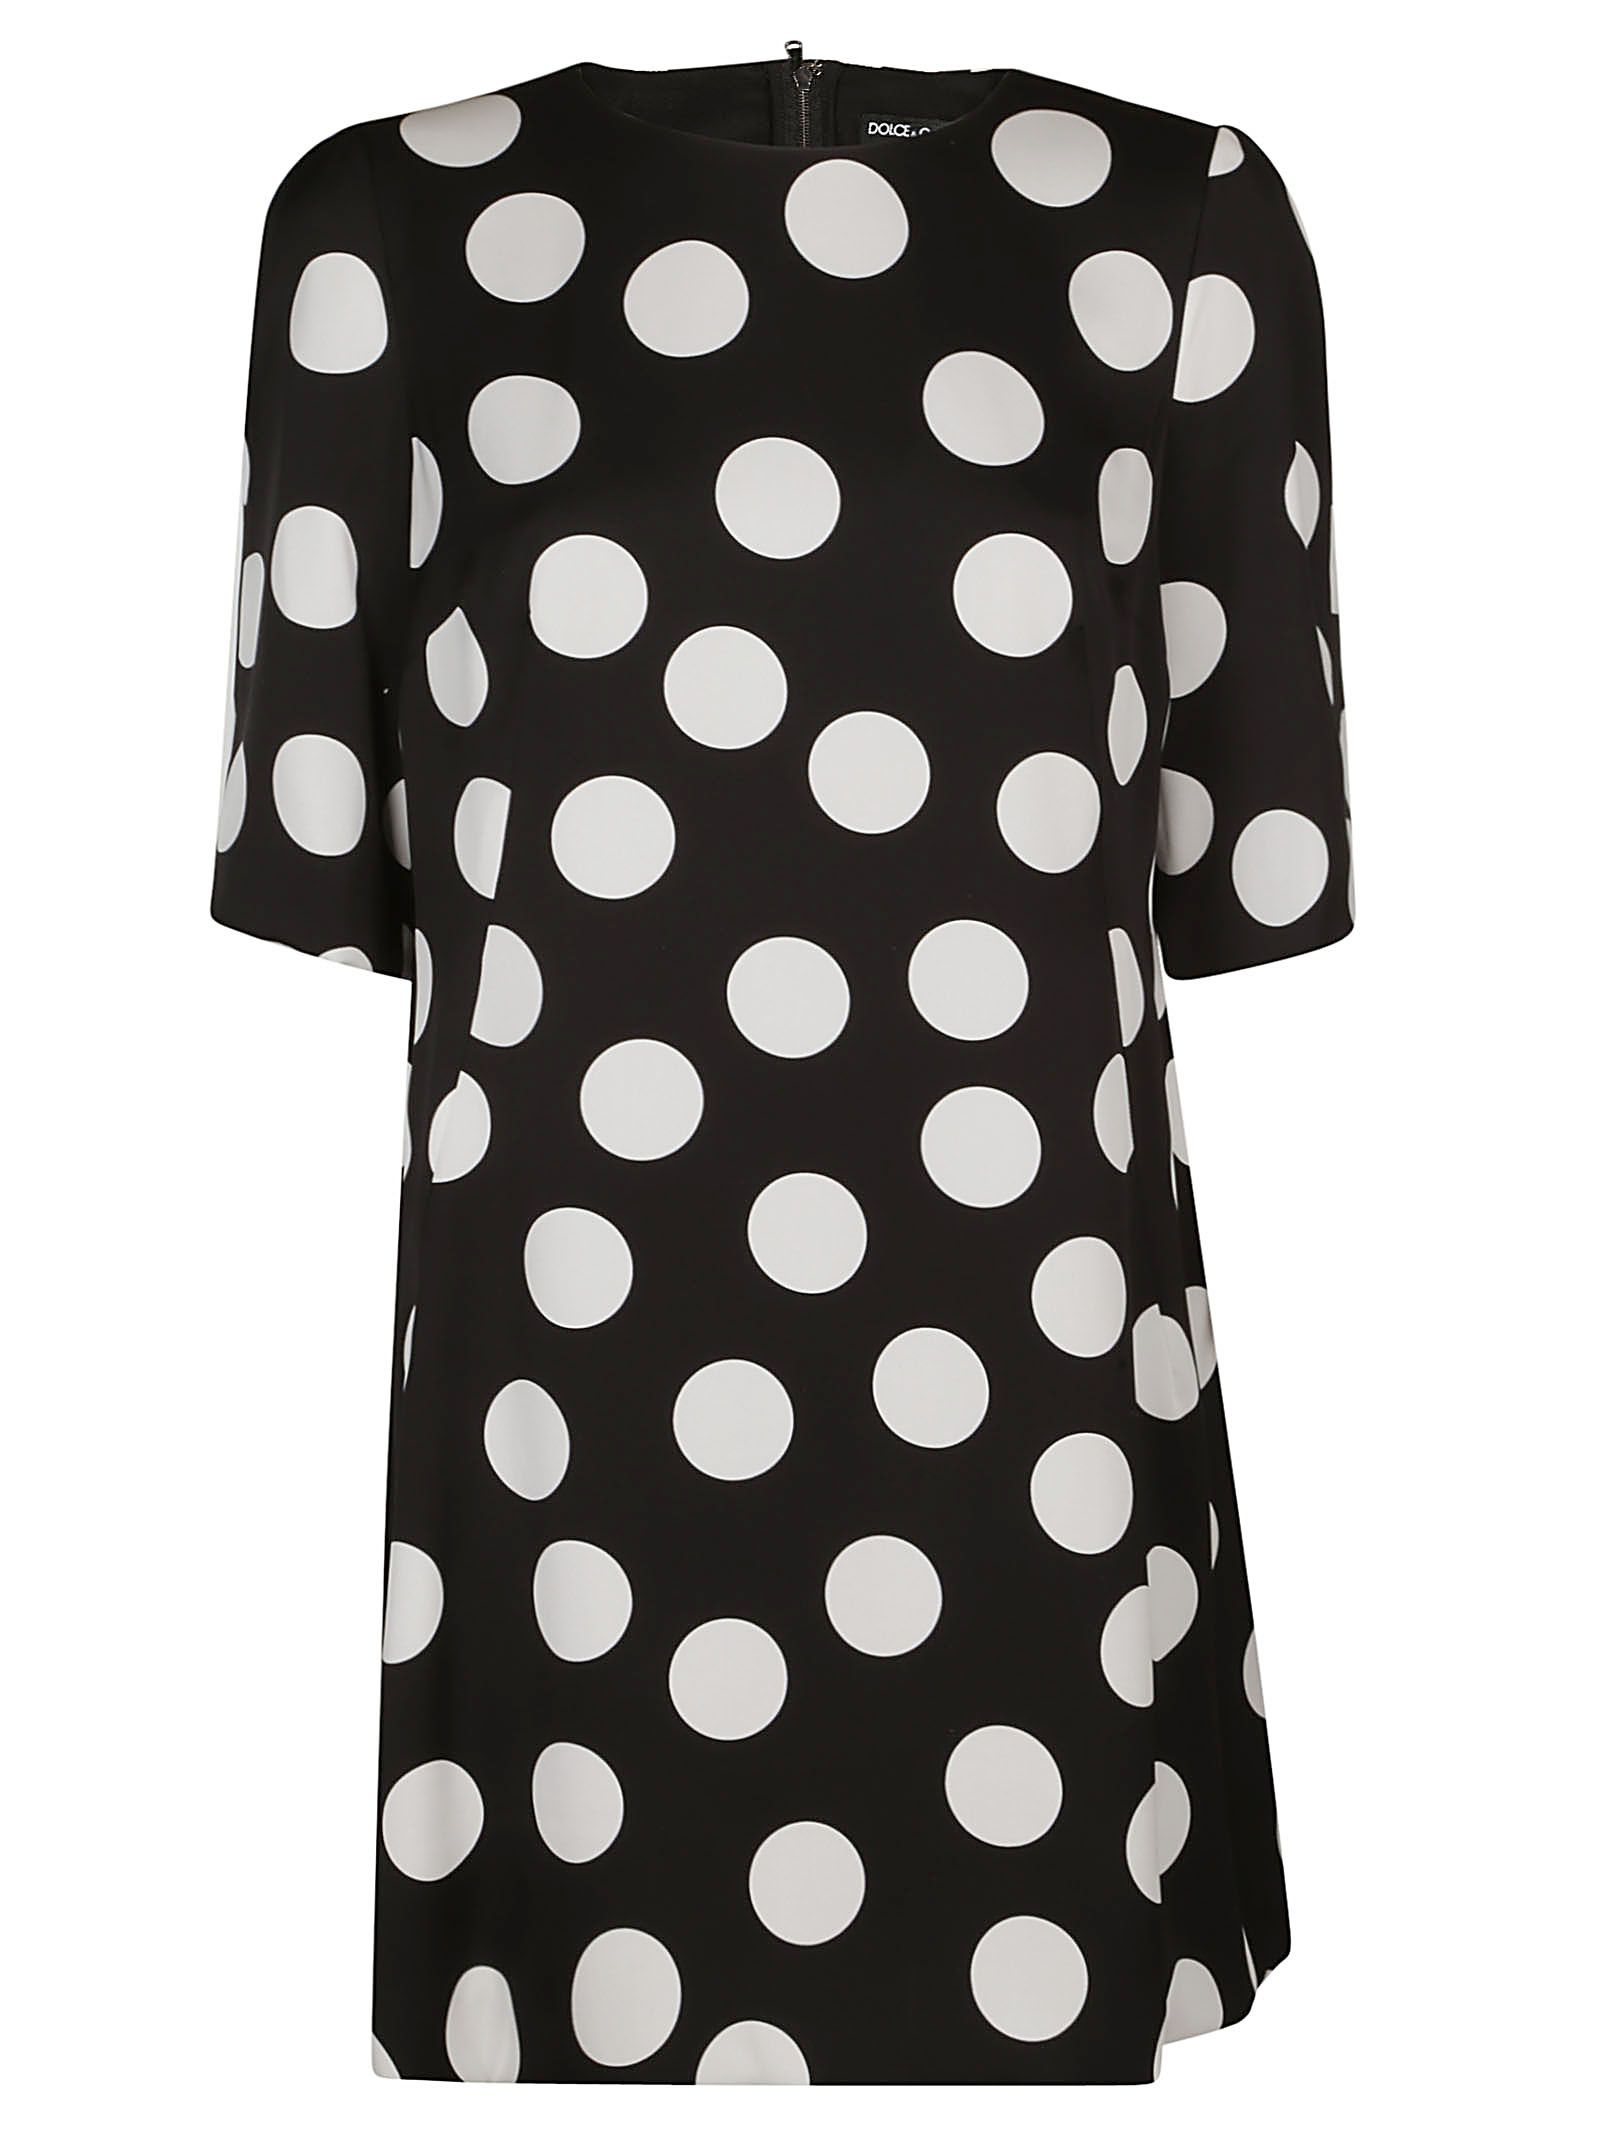 Dolce & Gabbana Polka-dot Dress